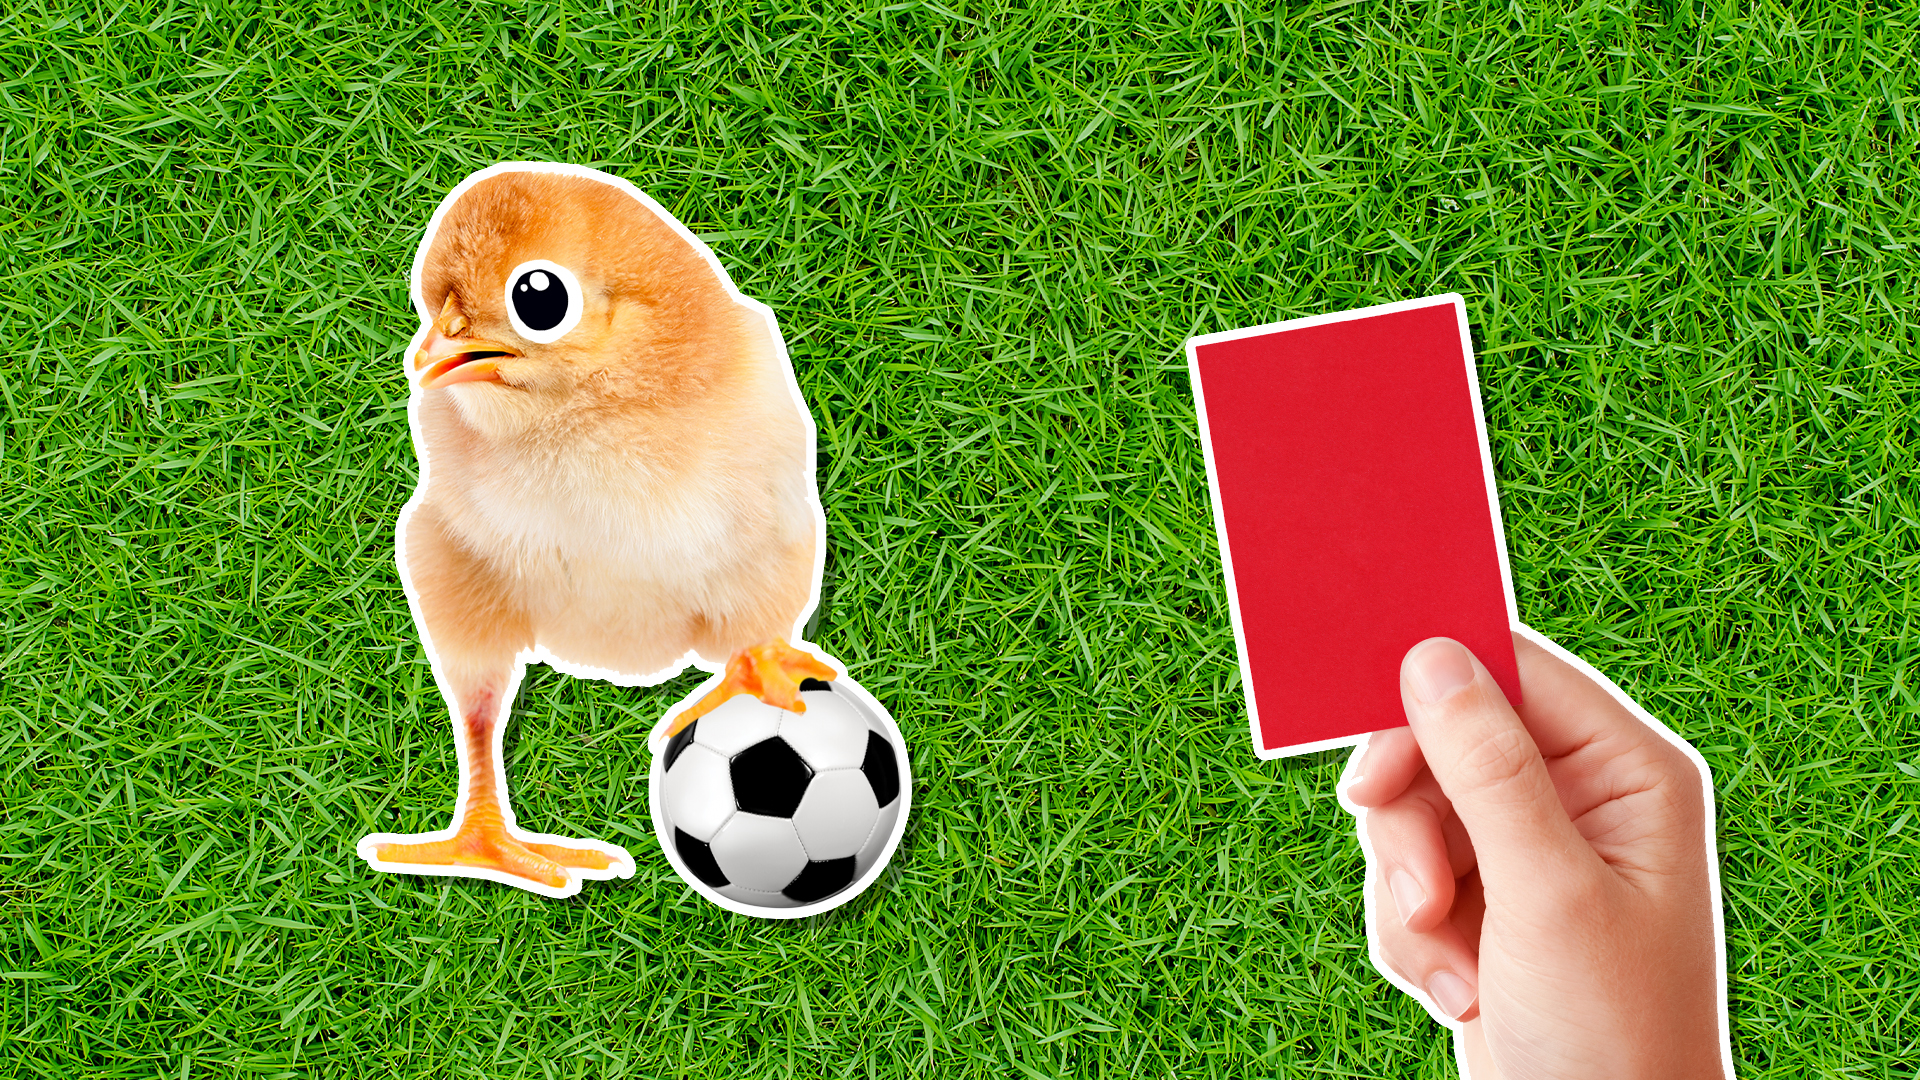 A chicken playing football